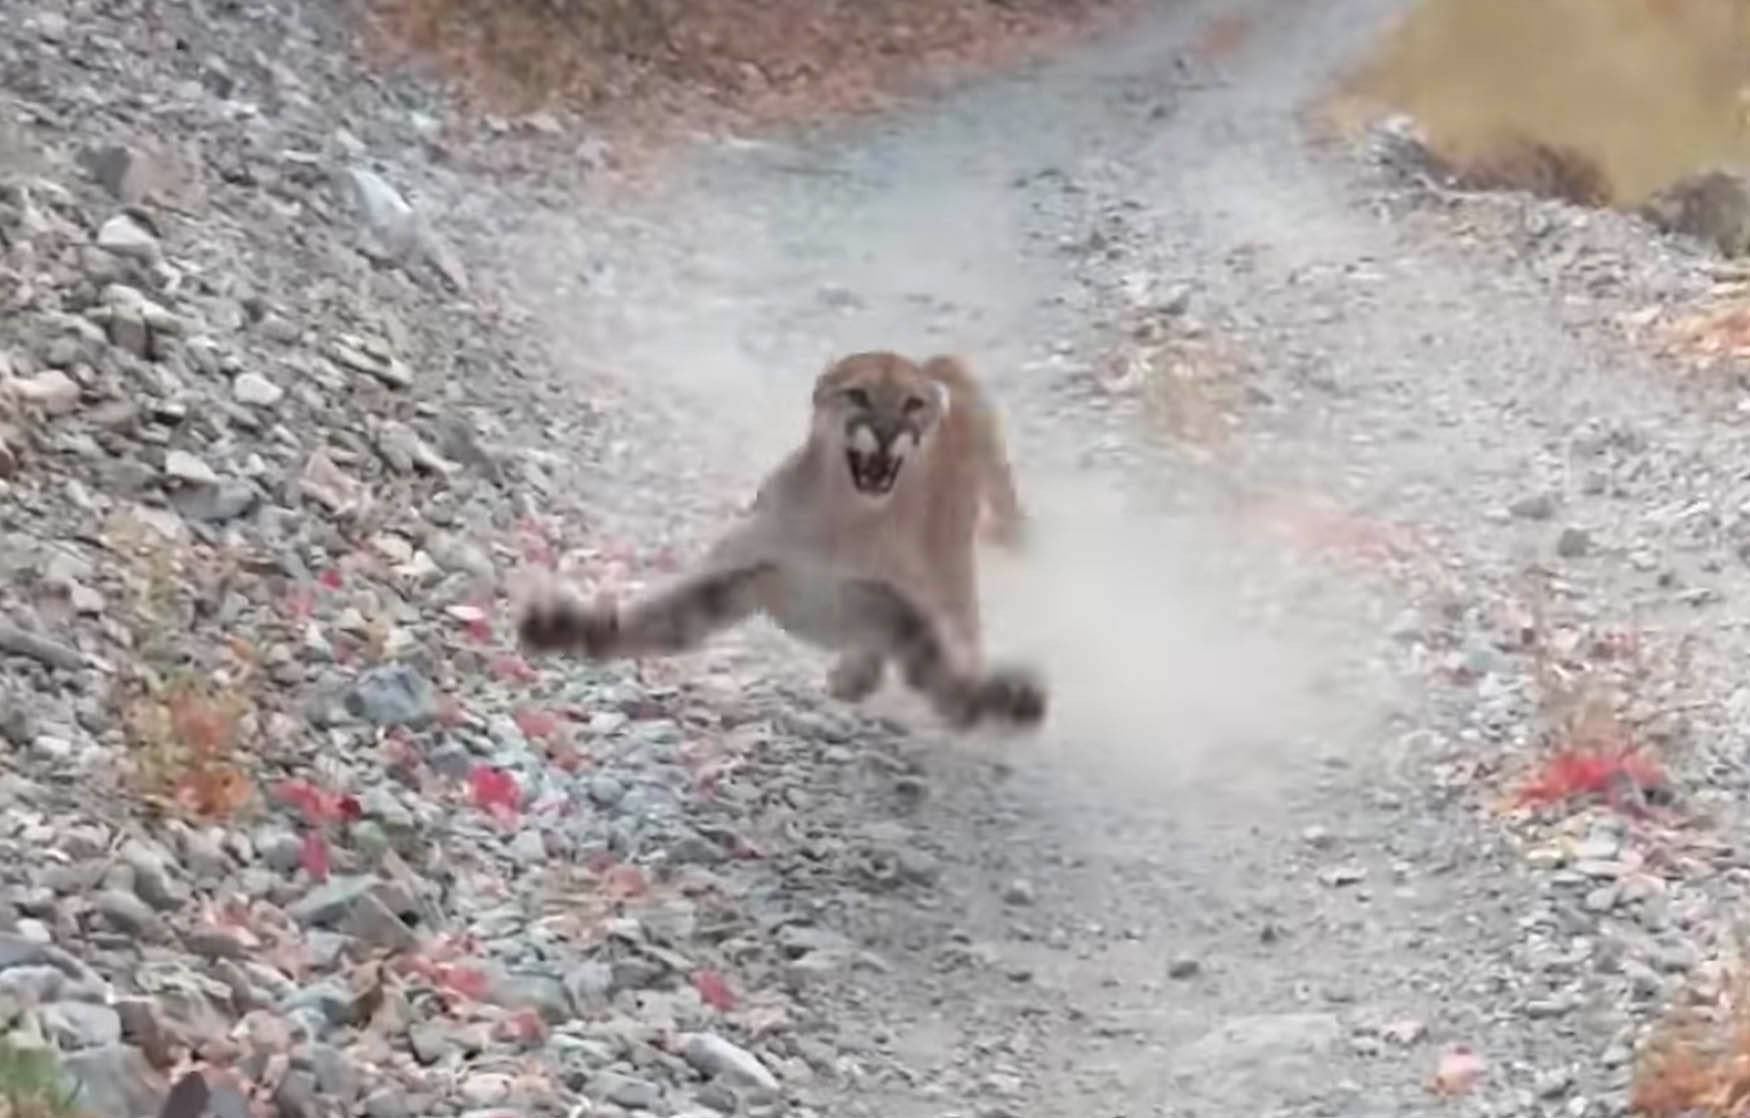 Additional Cougar Stalking Video – Enter blog to watch